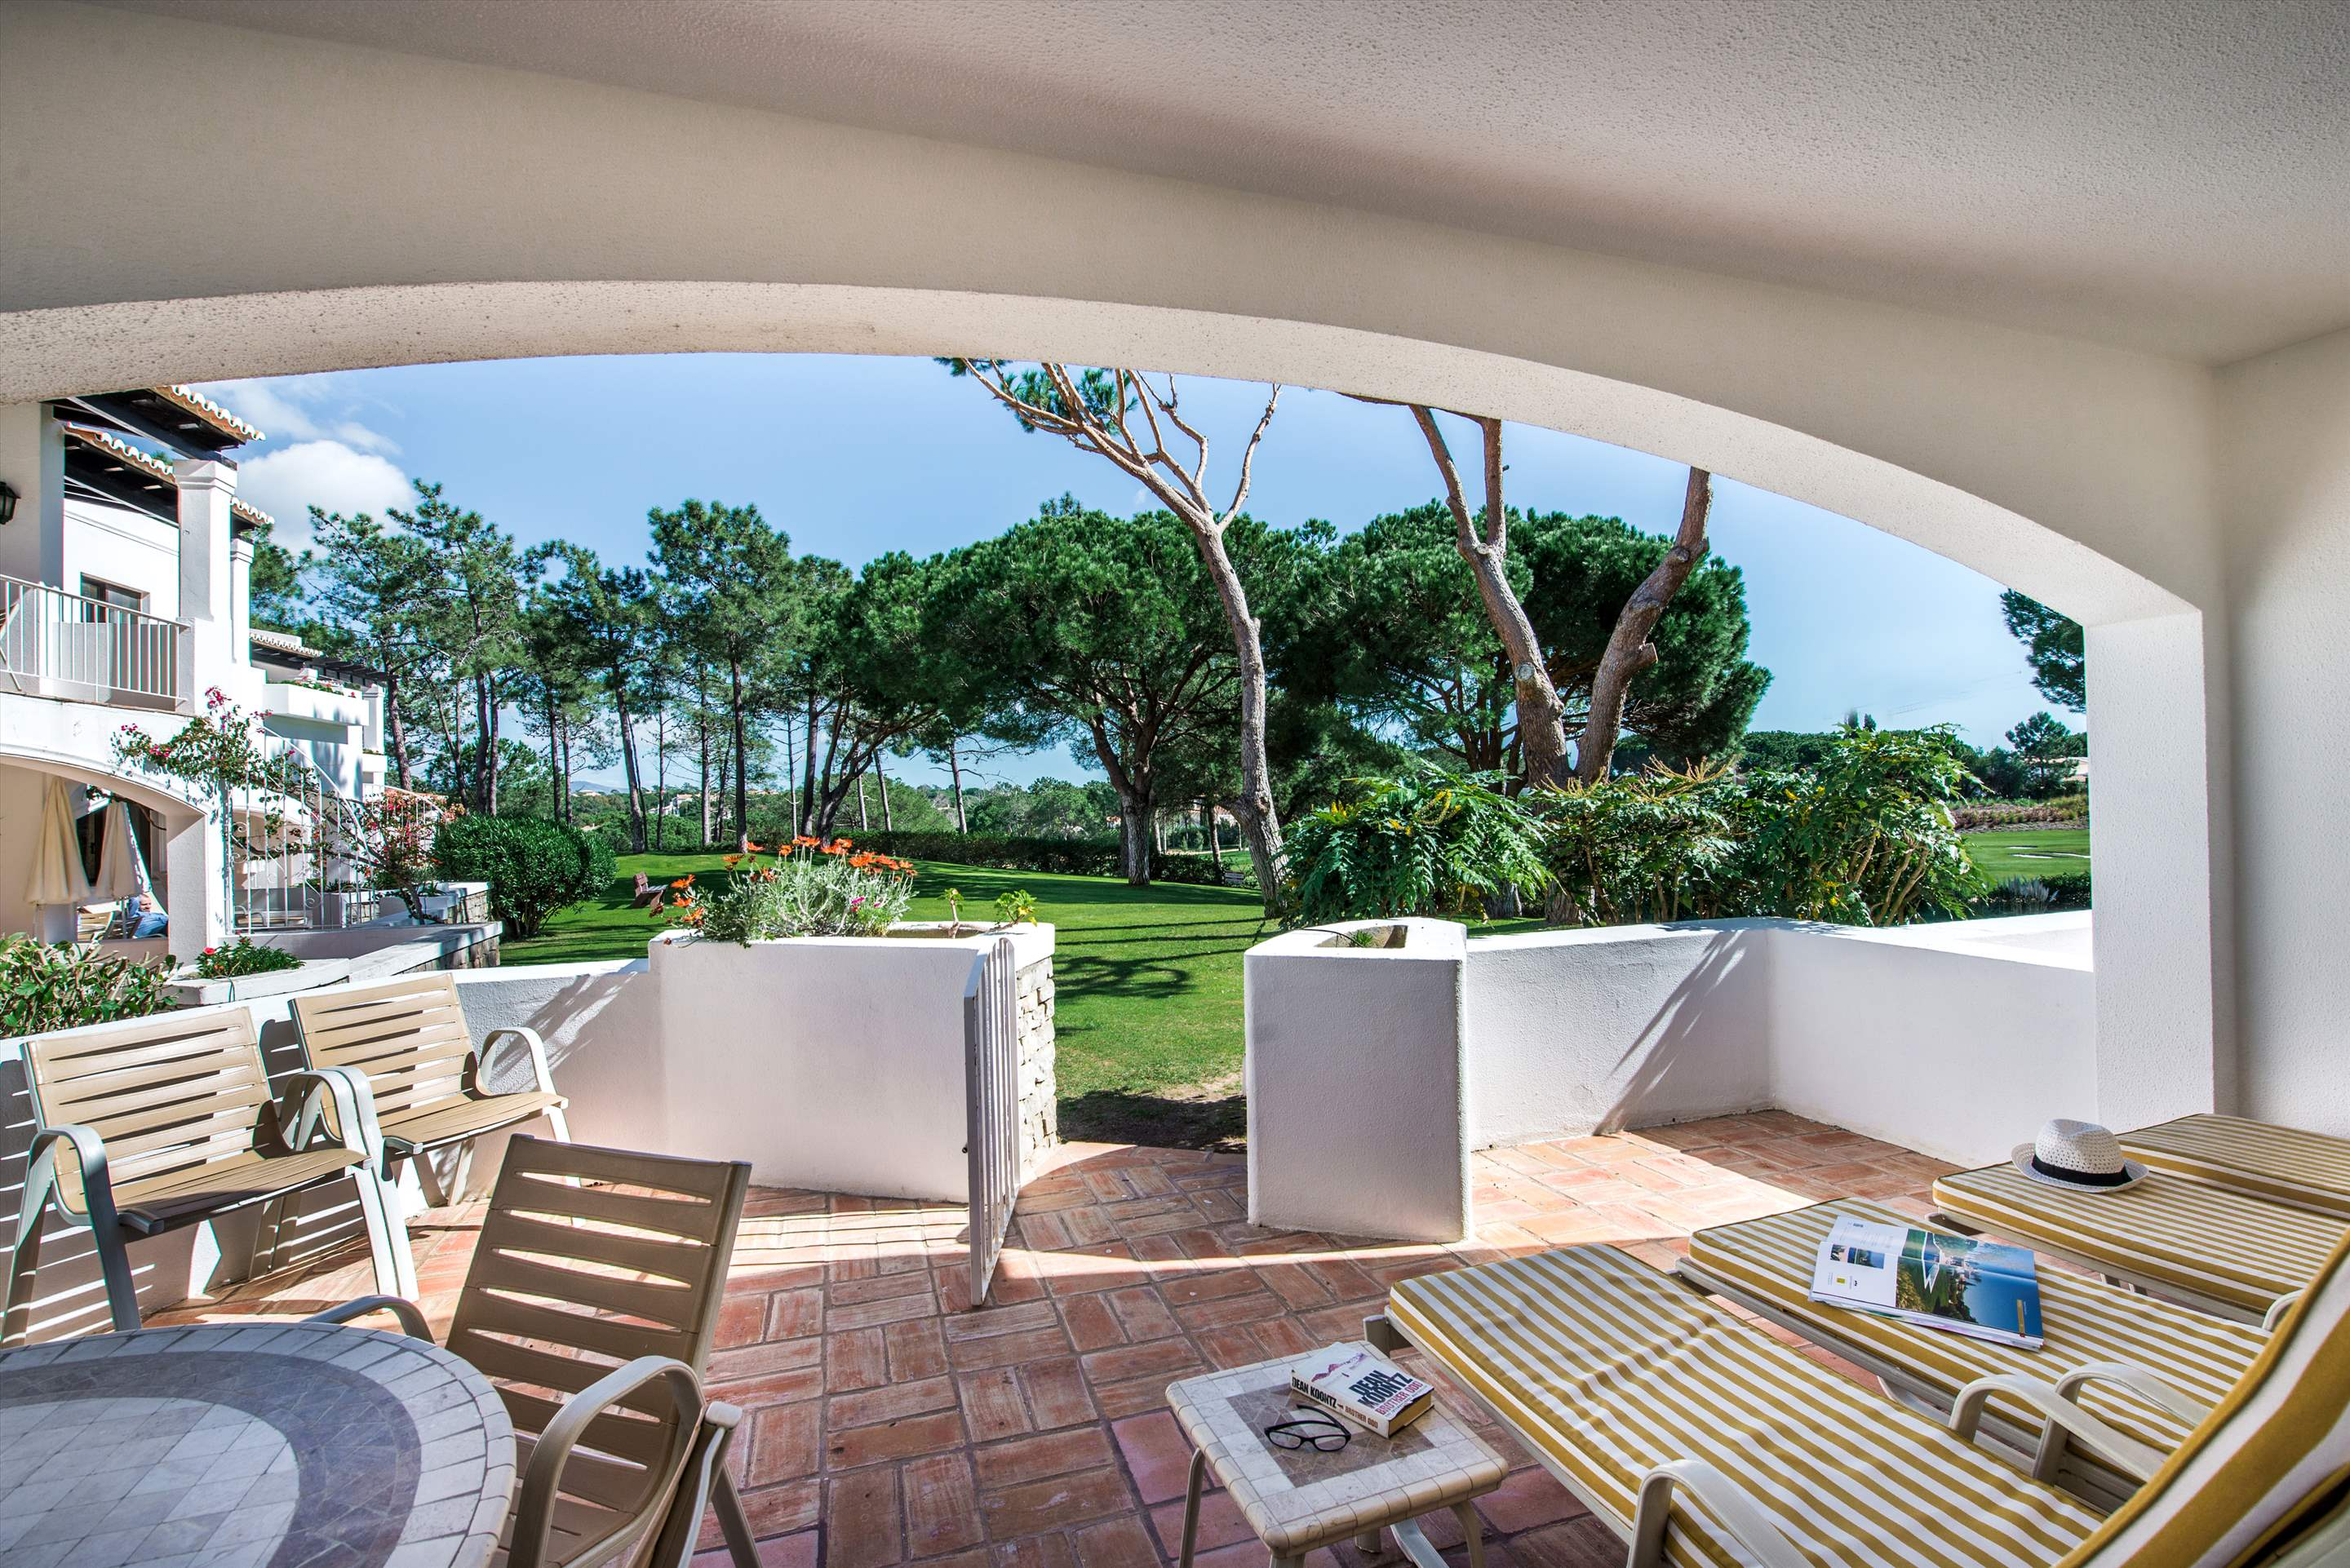 Four Seasons Country Club 1 bed, Superior - Sunday Arrival, 1 bedroom apartment in Four Seasons Country Club, Algarve Photo #10